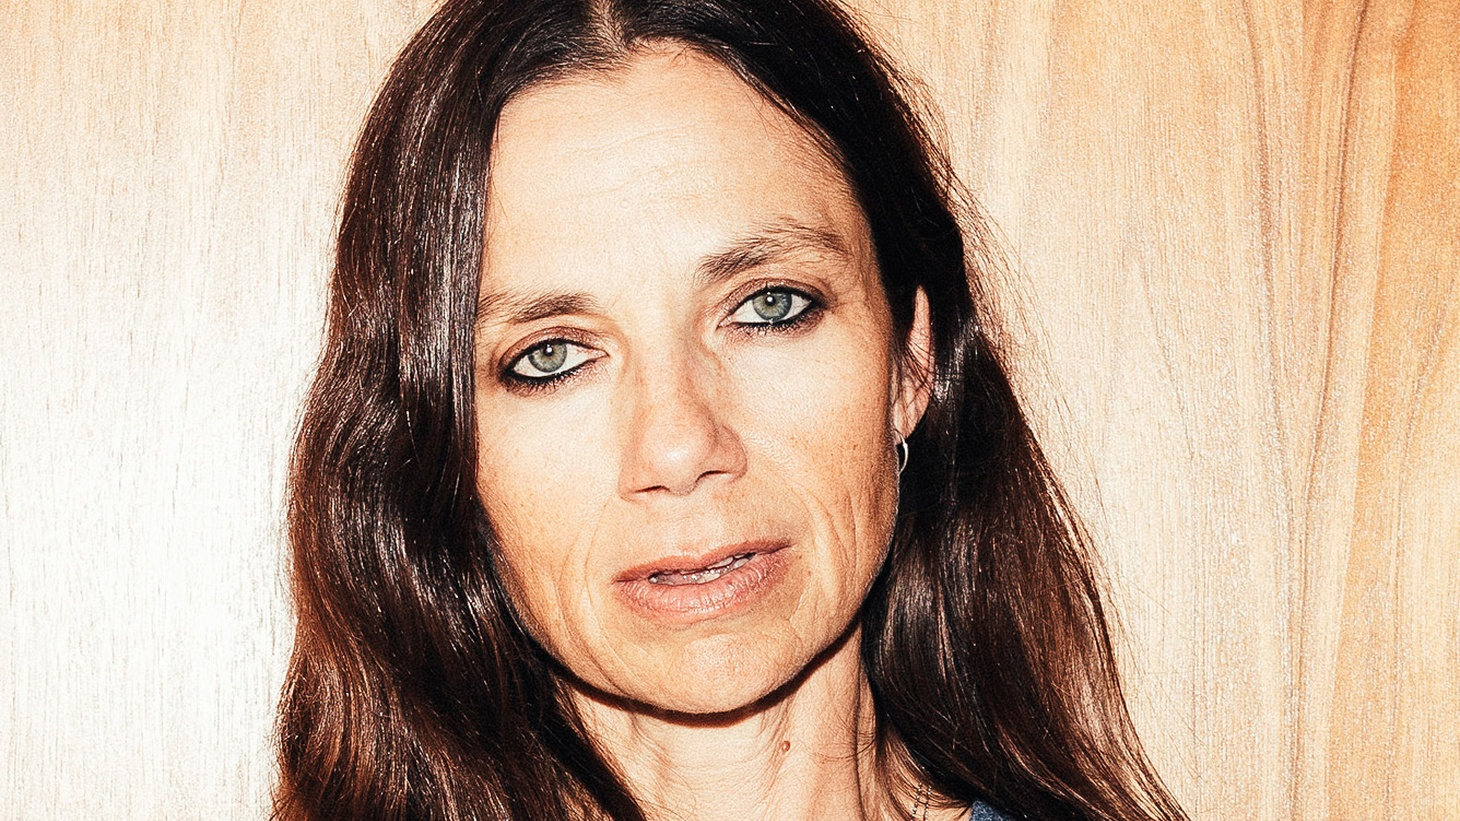 What's it like to be suddenly famous at 16? Justine Bateman found out when she was cast as Mallory in the hit NBC sitcom 'Family Ties.'